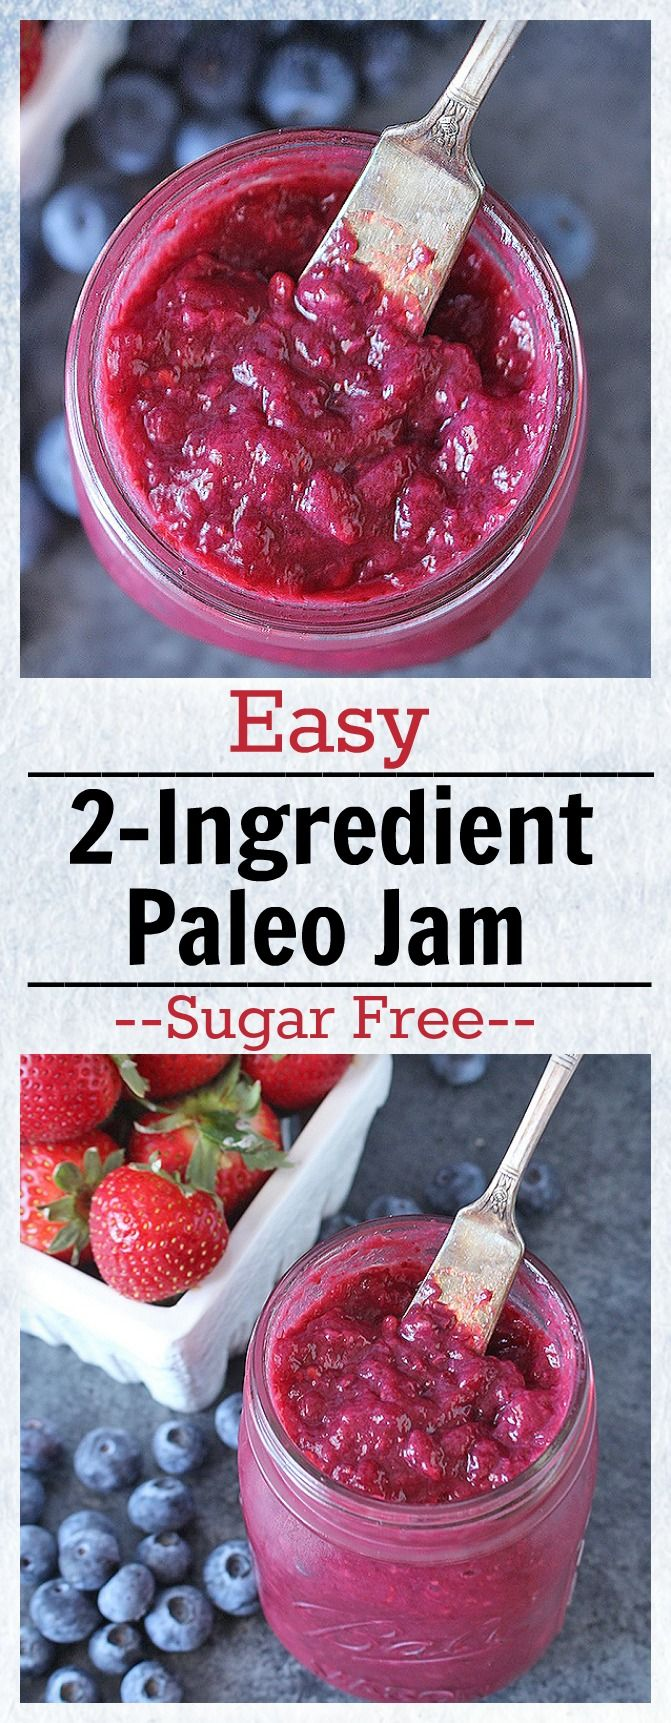 Easy 2 Ingredient Paleo Jam- sweetened only with fruit and made in under 20 minutes. Gluten free, dairy free, whole30, and so delicious!